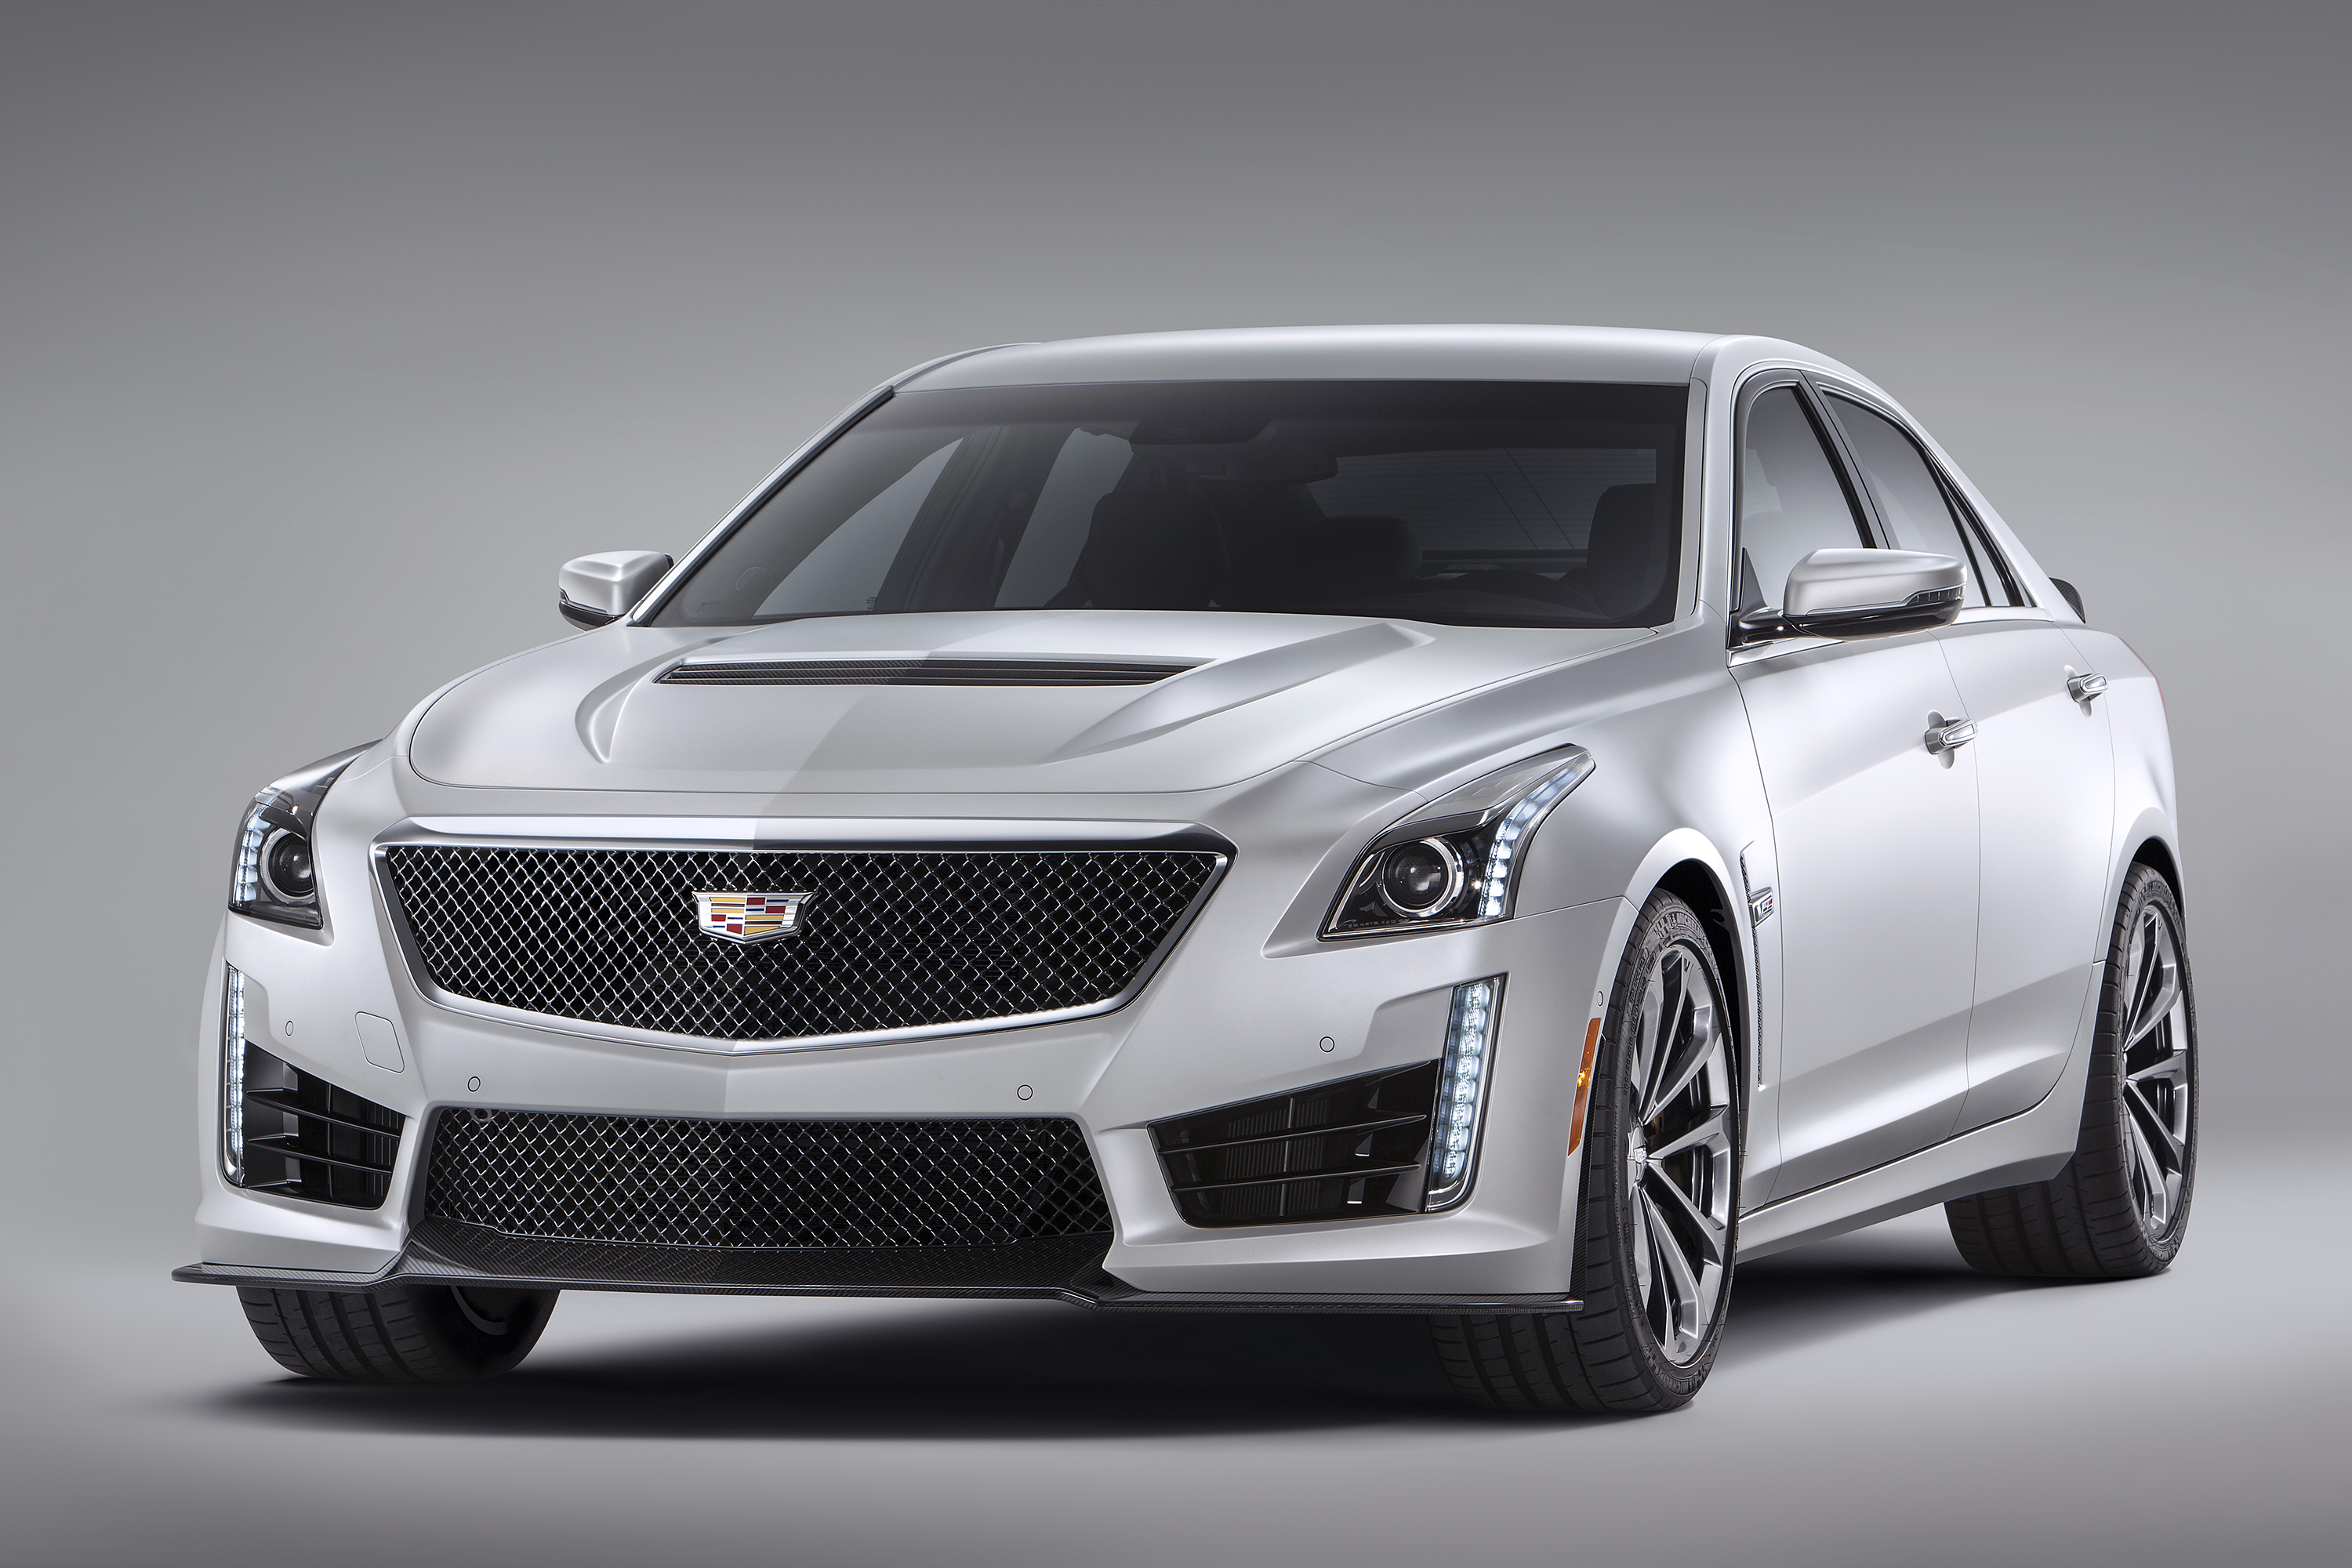 2016 Cadillac CTS V Sedan 012 2016 cadillac cts v introduced at detroit naias 2011 cts fuse box at panicattacktreatment.co